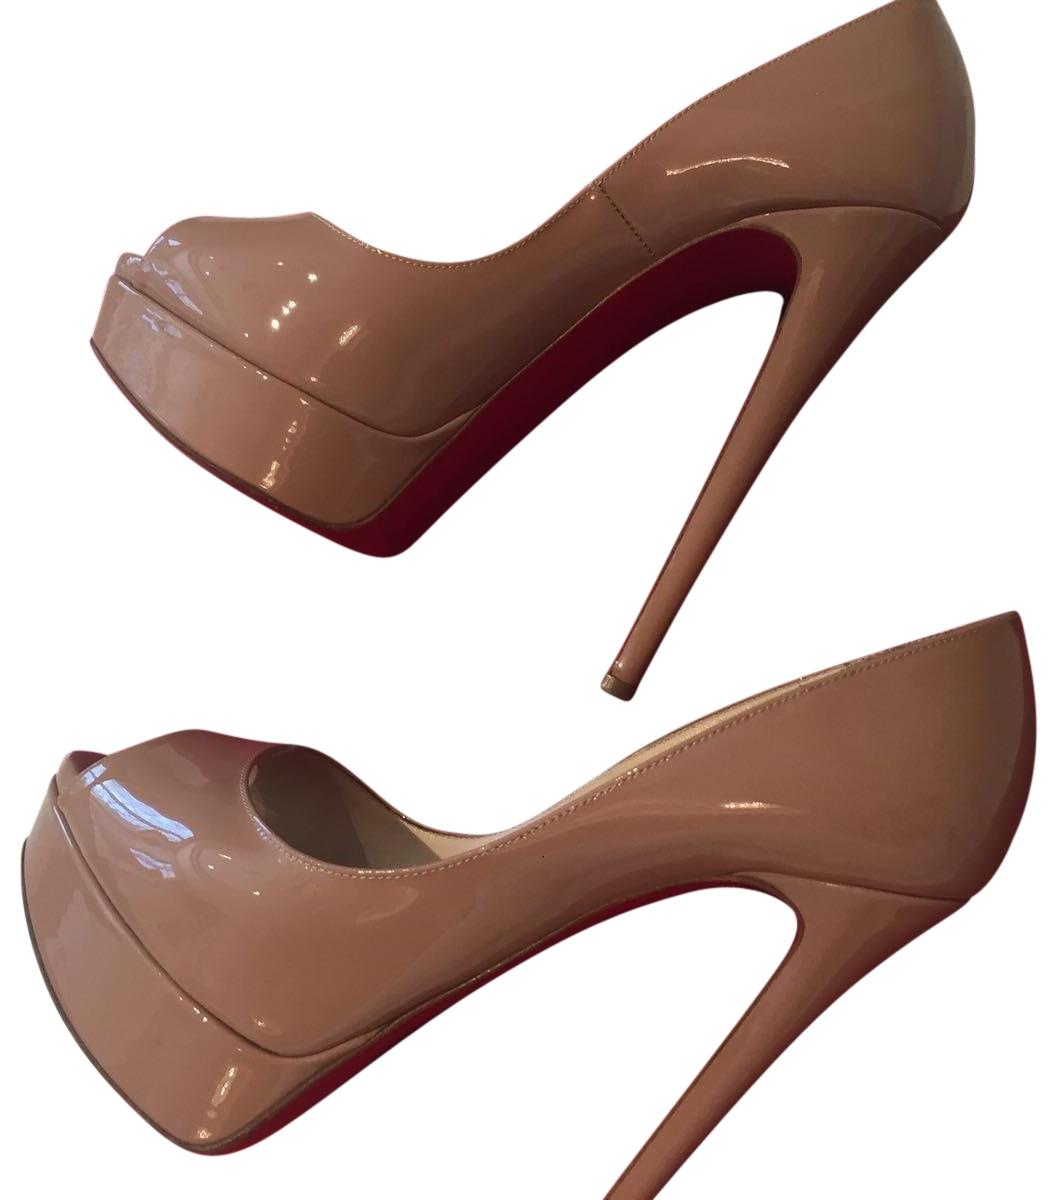 Christian Louboutin Nude Patent Pumps Size EU 37.5 (Approx. US 7.5) Regular (M, B)